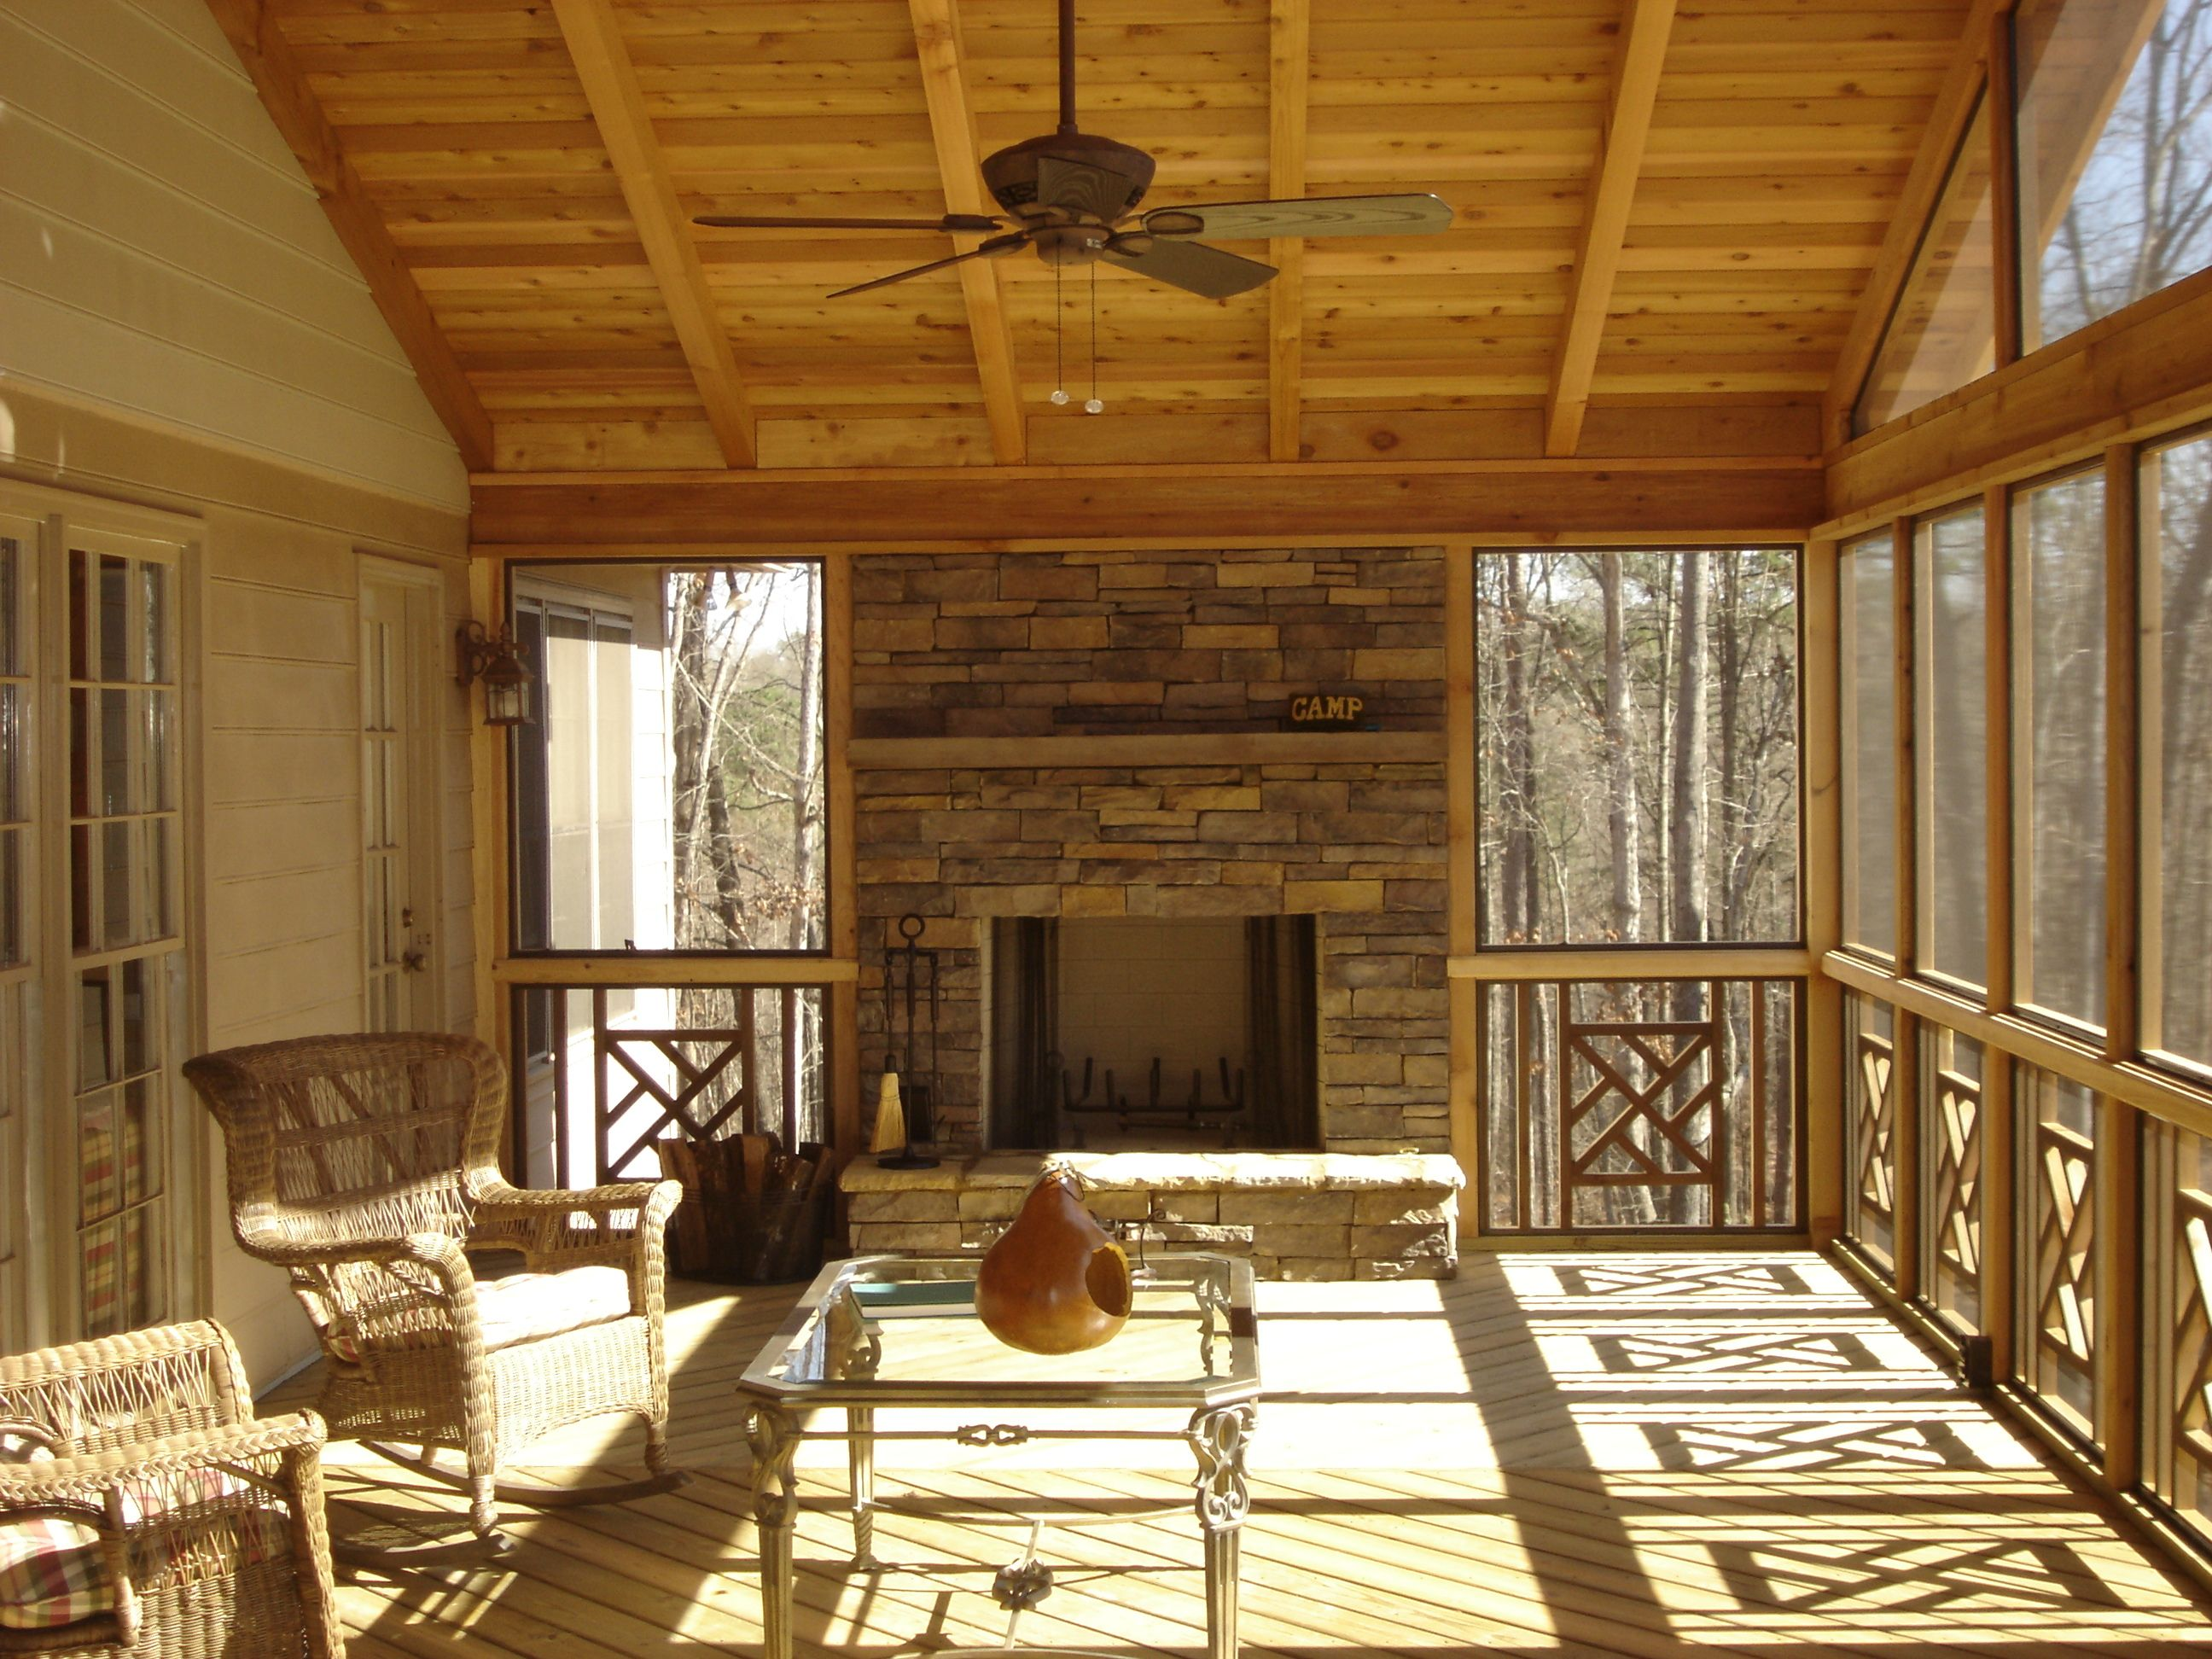 Screened In Deck With Built In Fireplace Porch Fireplace Porch Design House With Porch